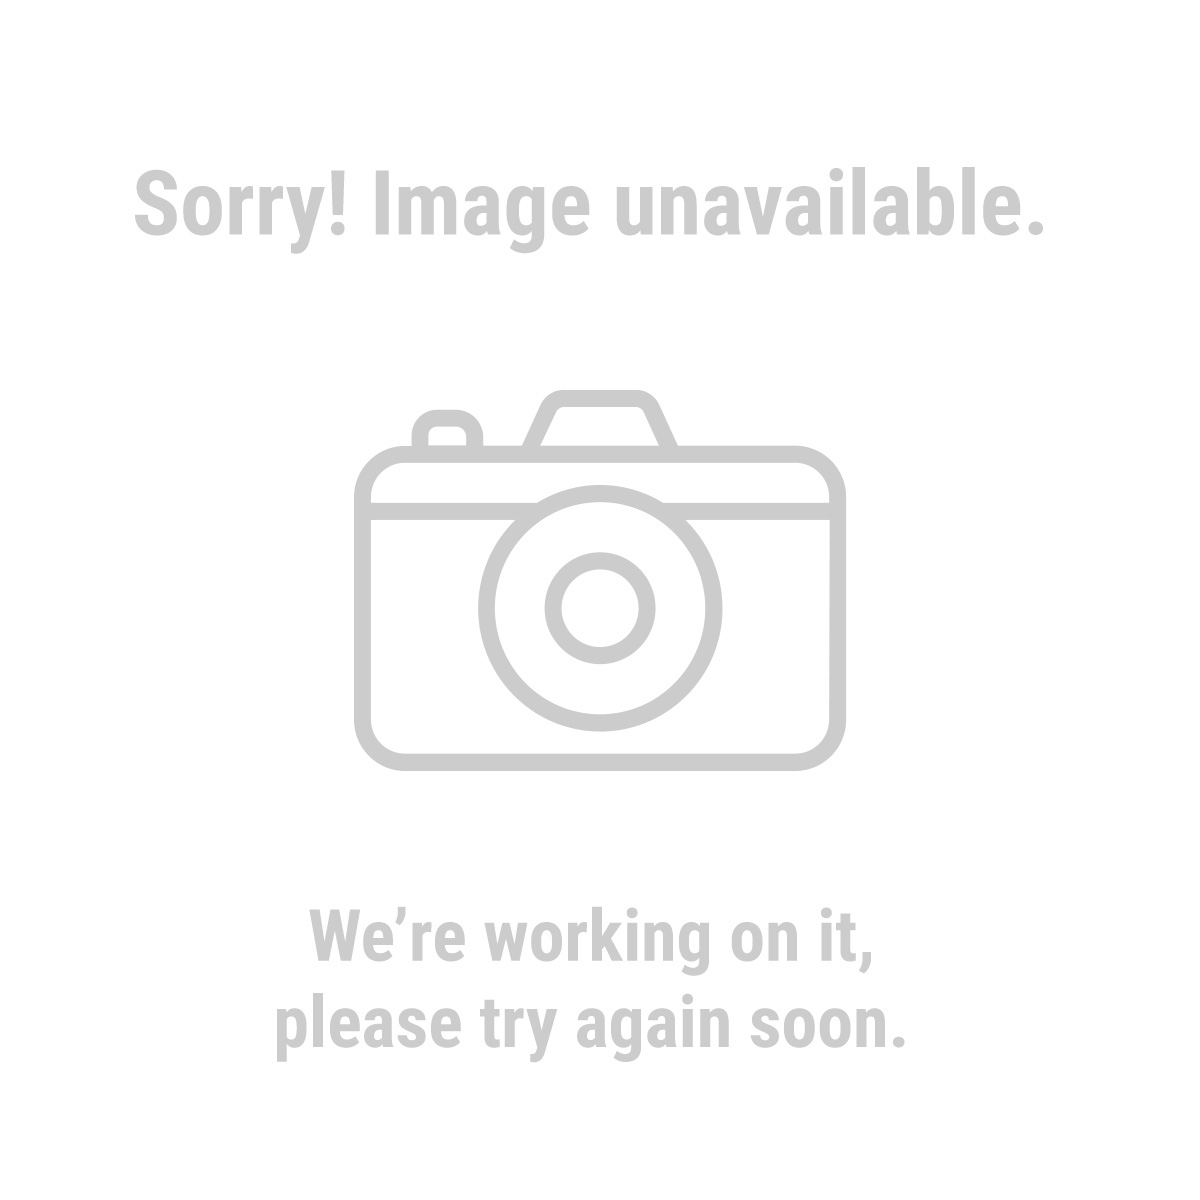 Drill Master 68828 58 Piece Quick Change Drill and Driver Bit Set